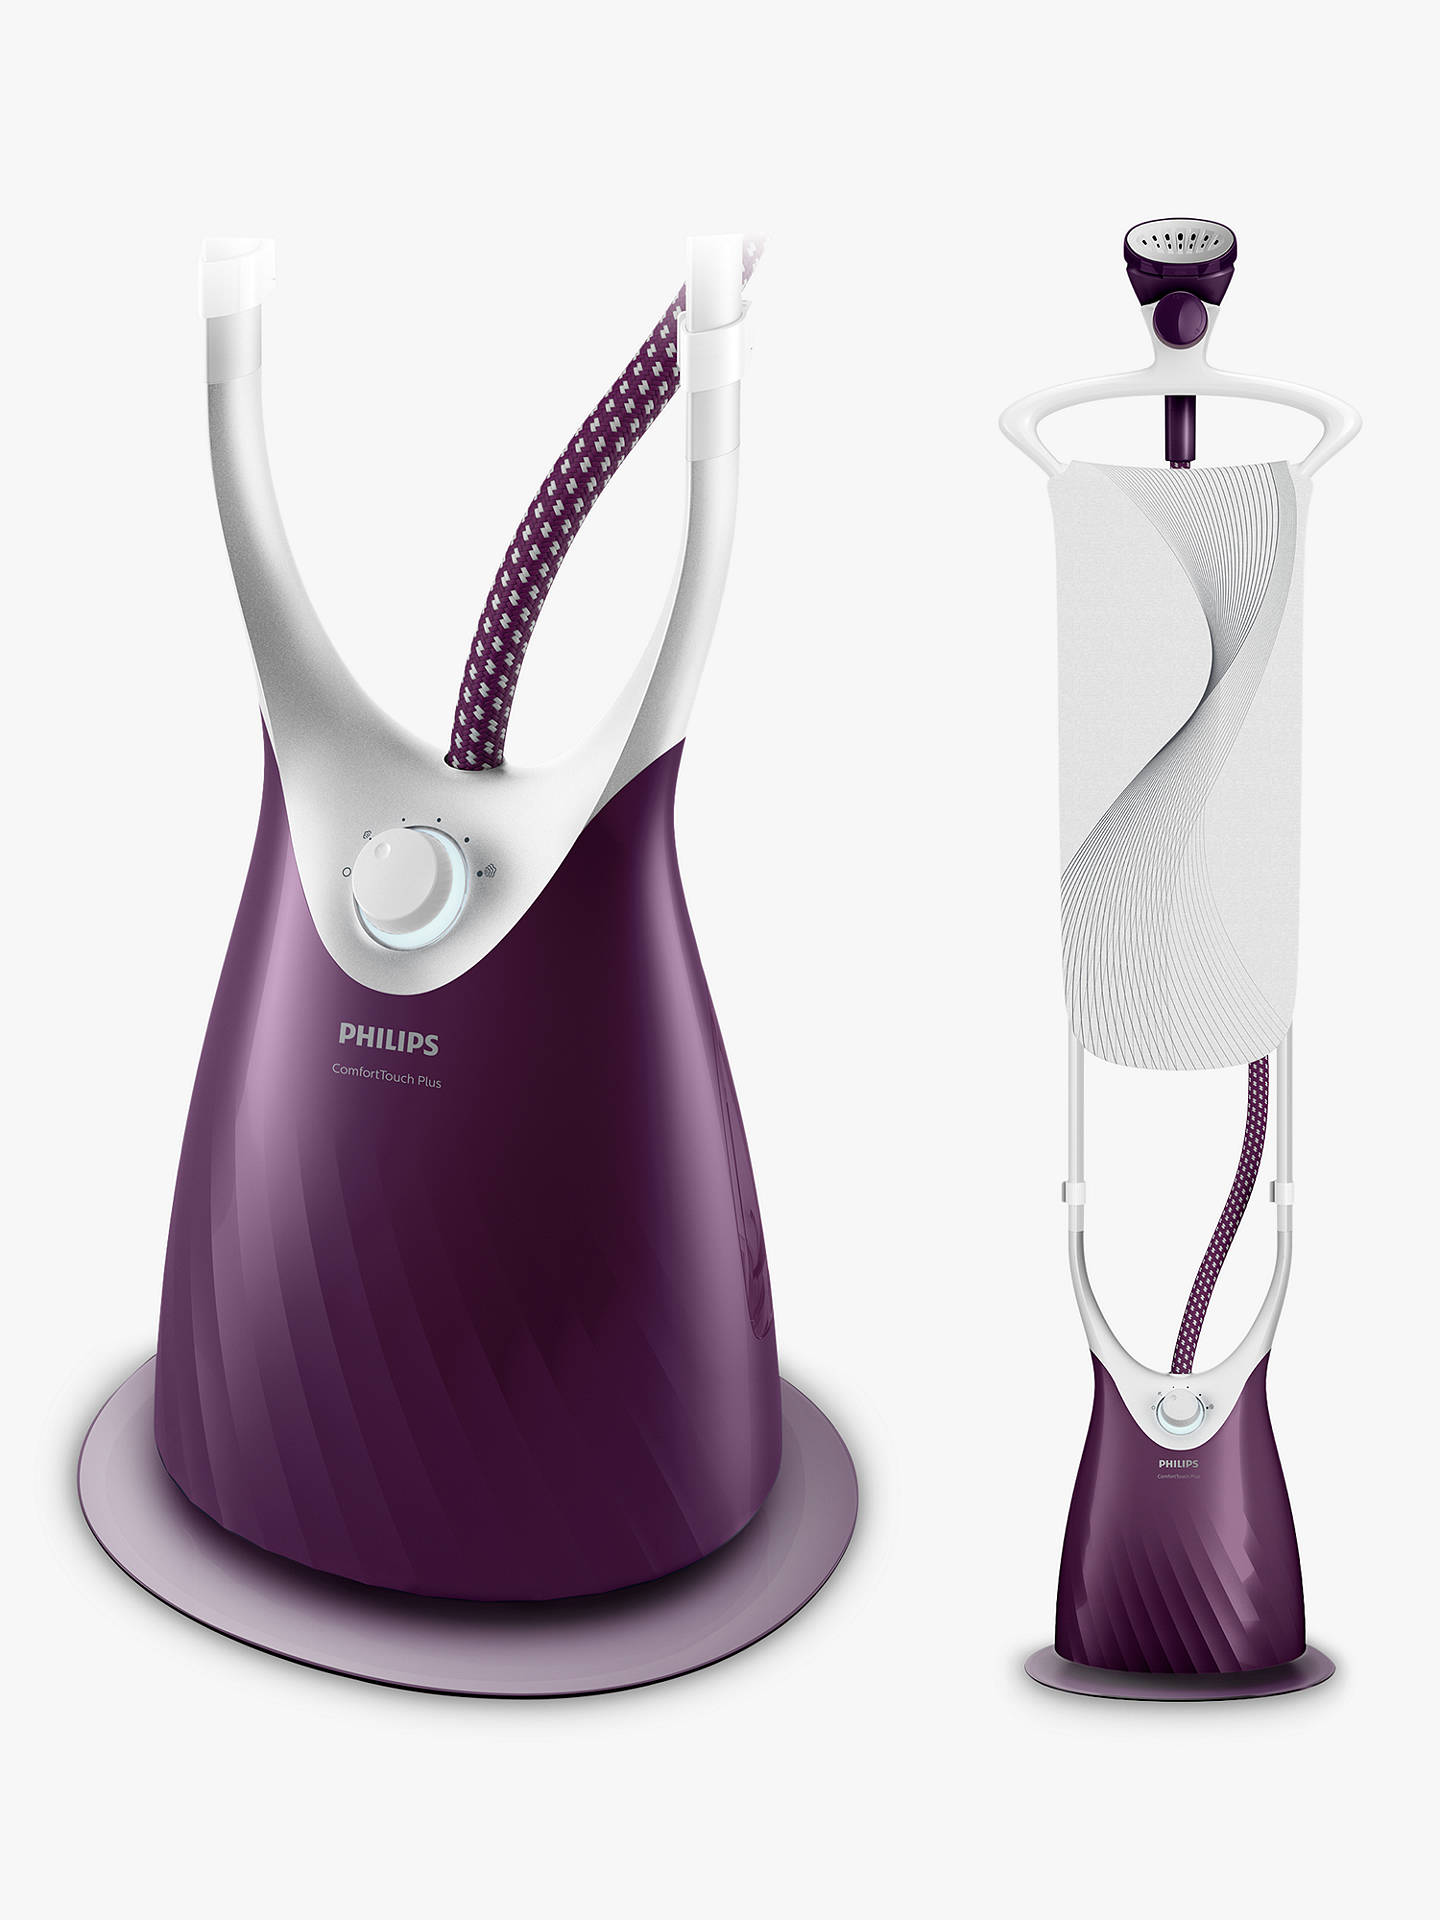 Buy Philips GC558/36 ComfortTouch Plus Garment Steamer Online at johnlewis.com